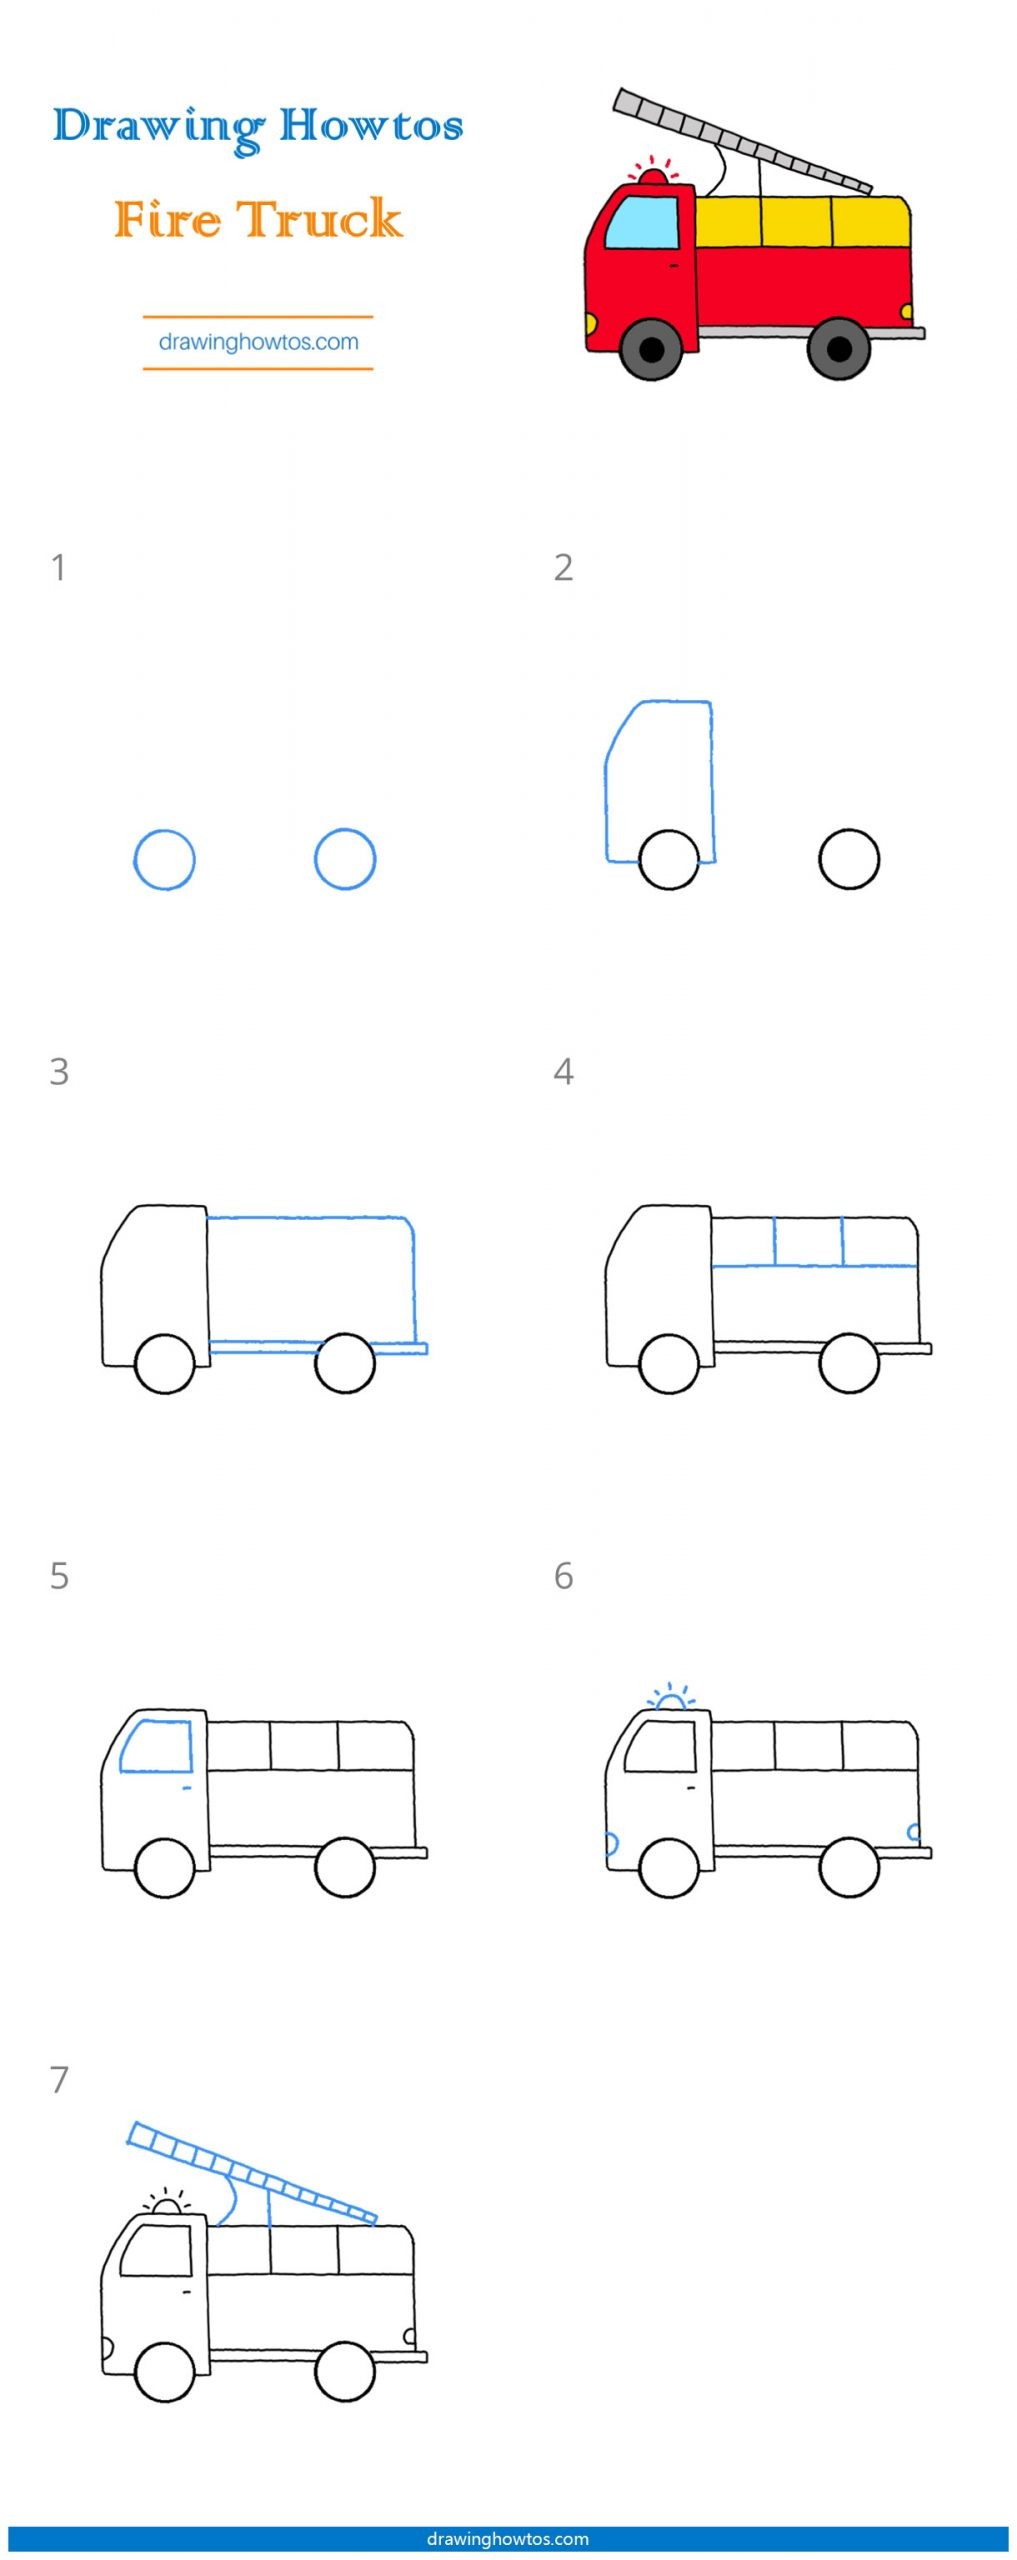 How To Draw A Fire Truck : truck, Truck, Drawing, Guides, Howtos